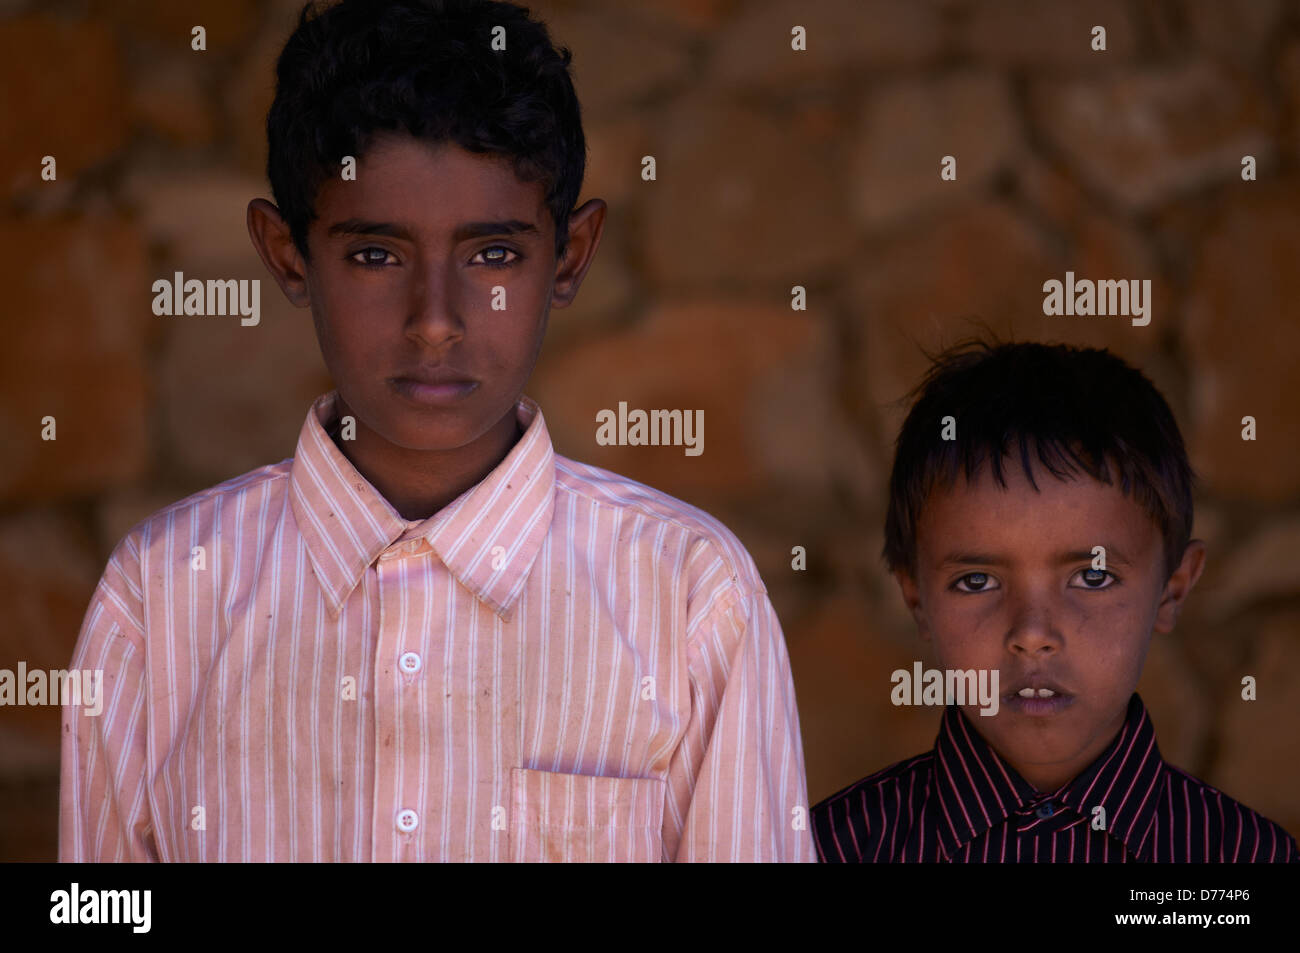 Portraits of two local boy - Stock Image